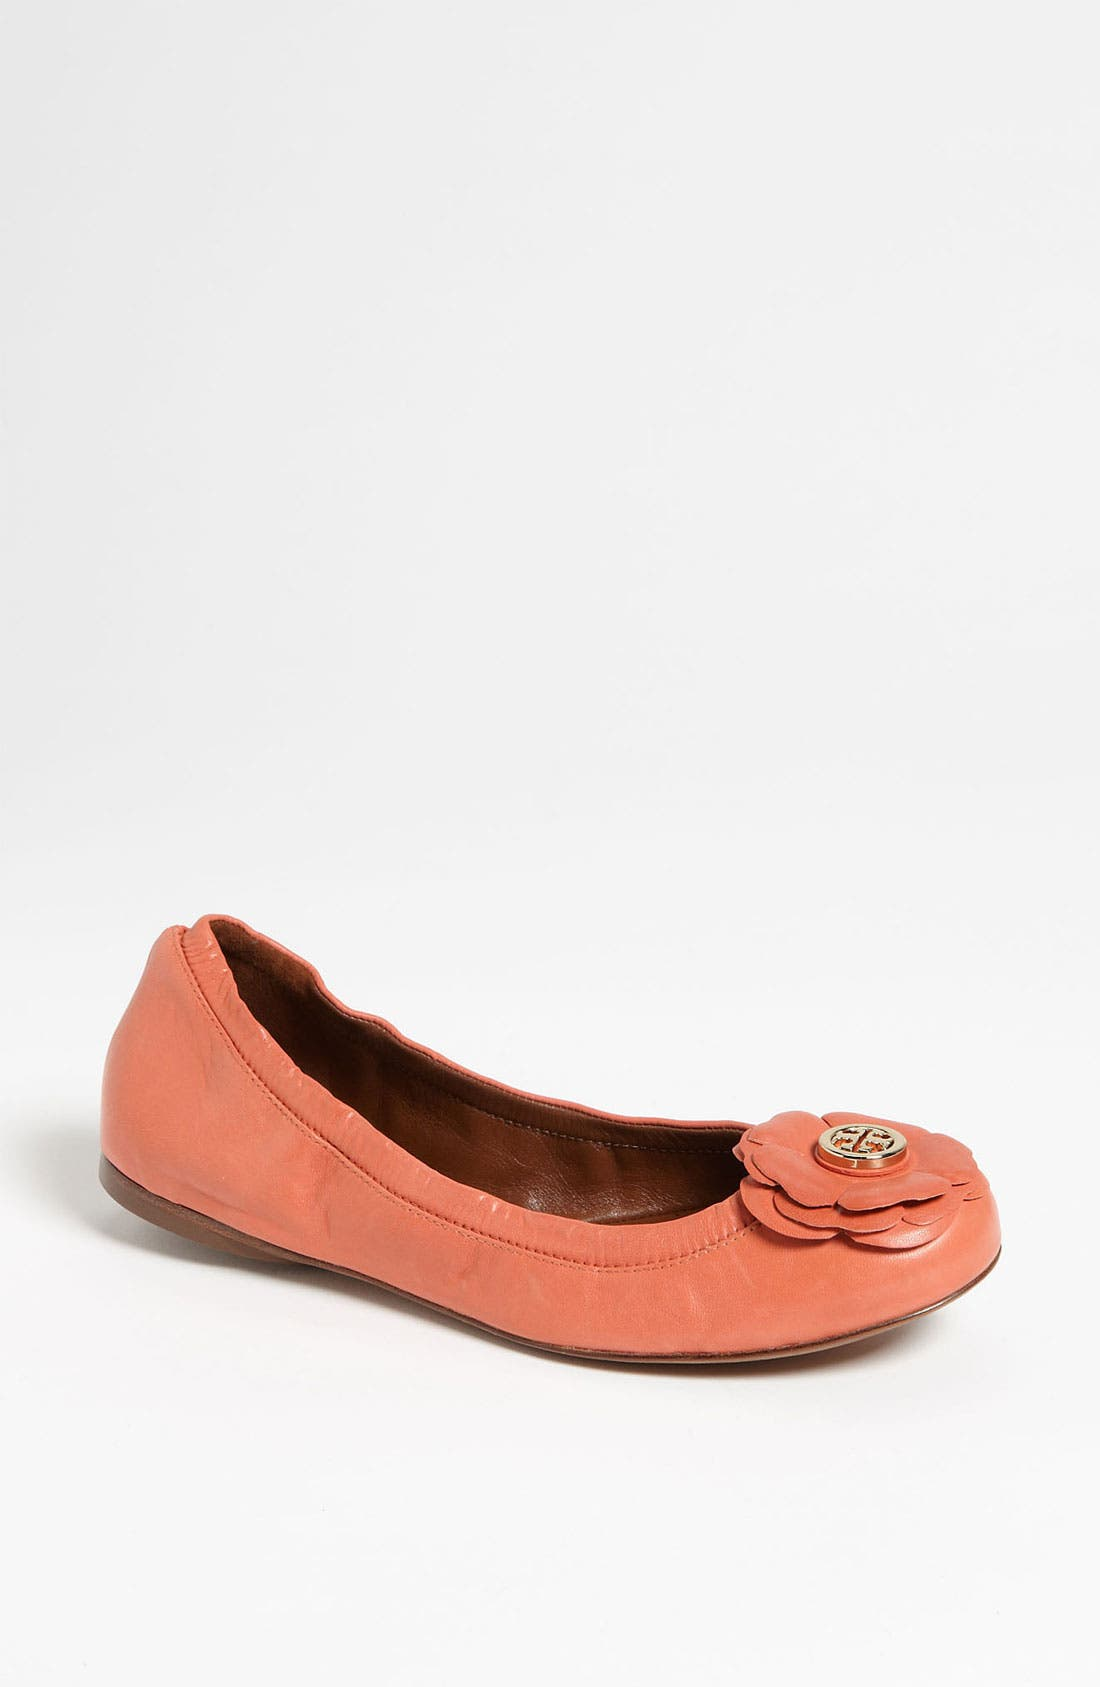 Main Image - Tory Burch 'Shelby' Flat